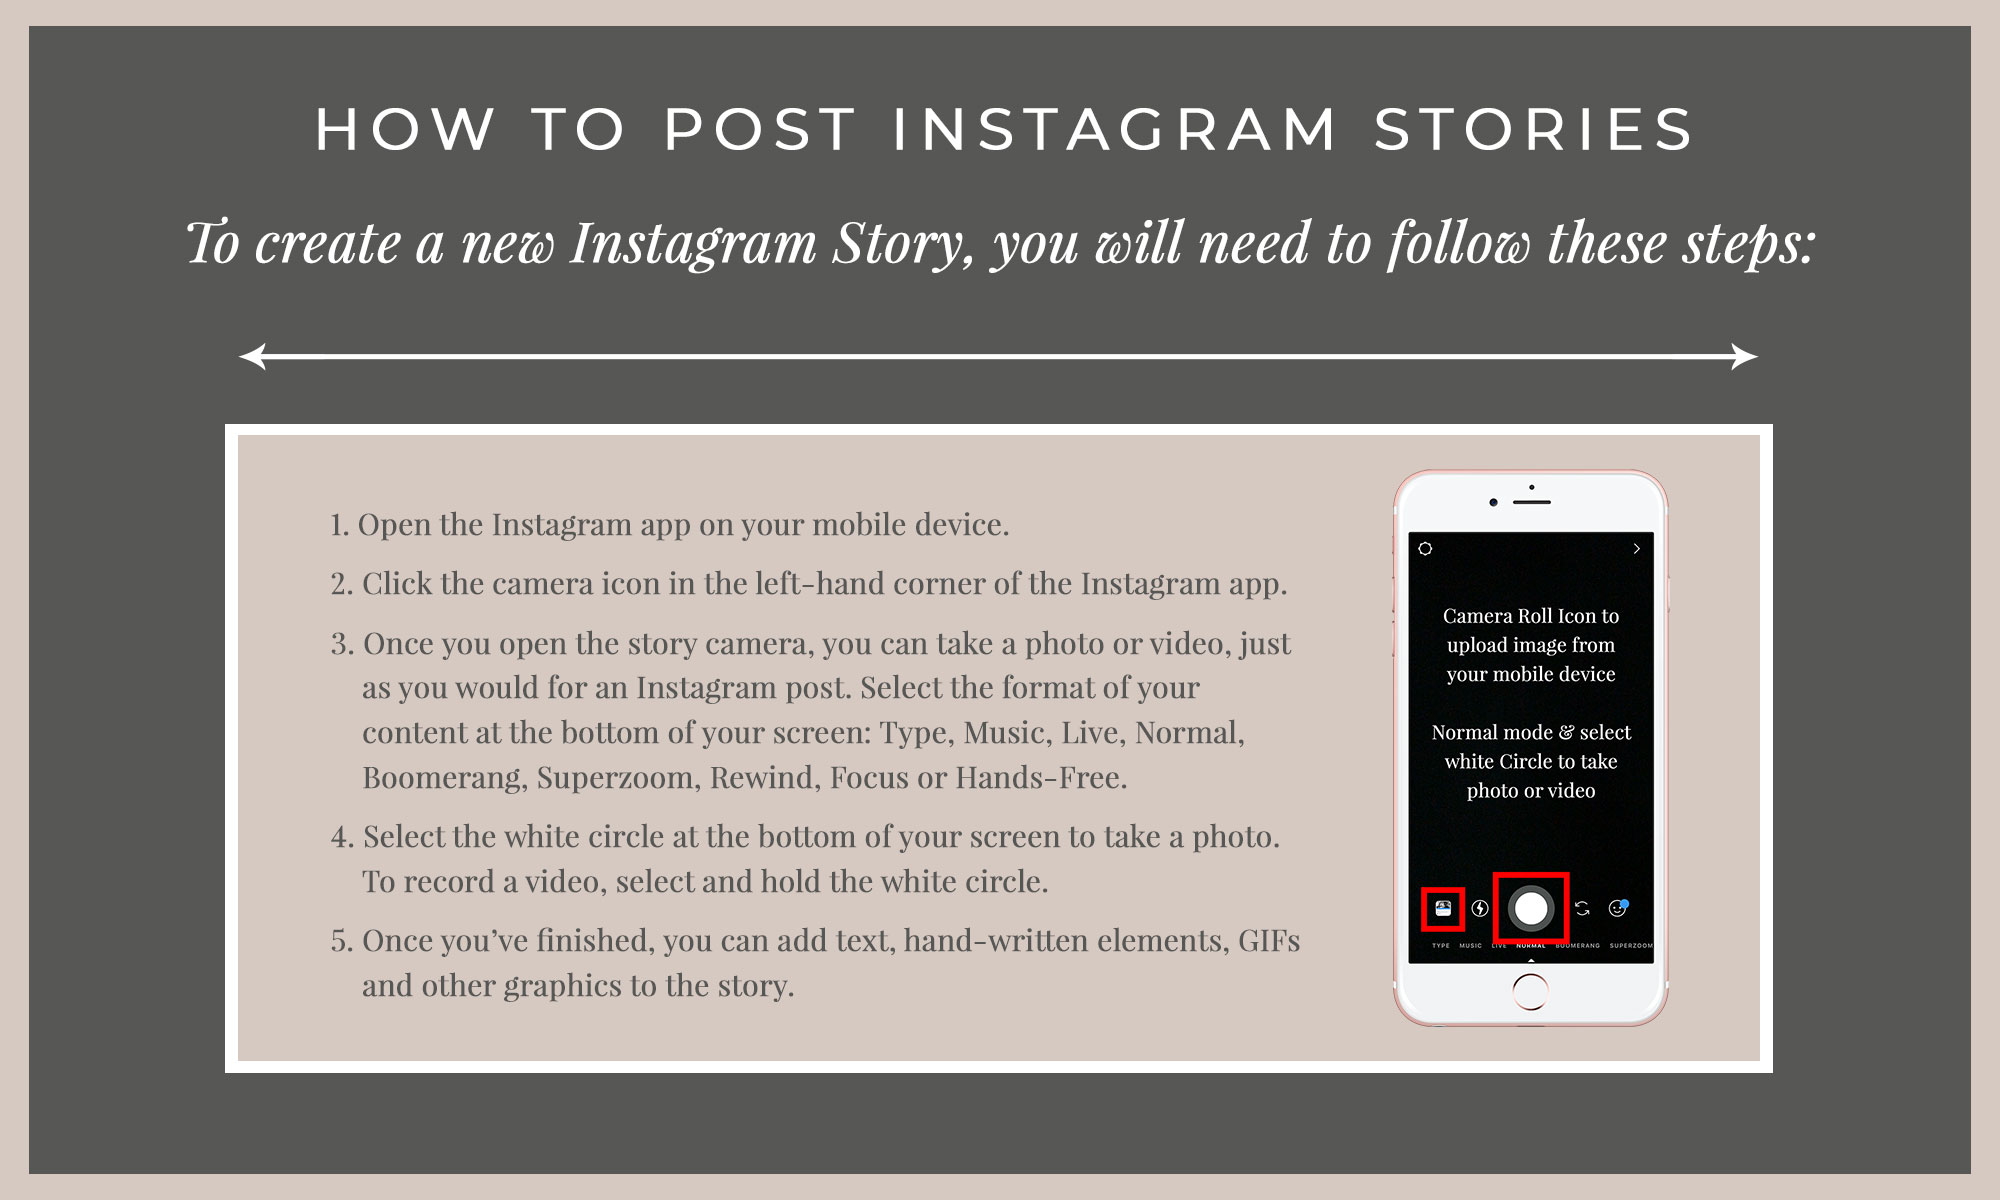 How to post Instagram Stories